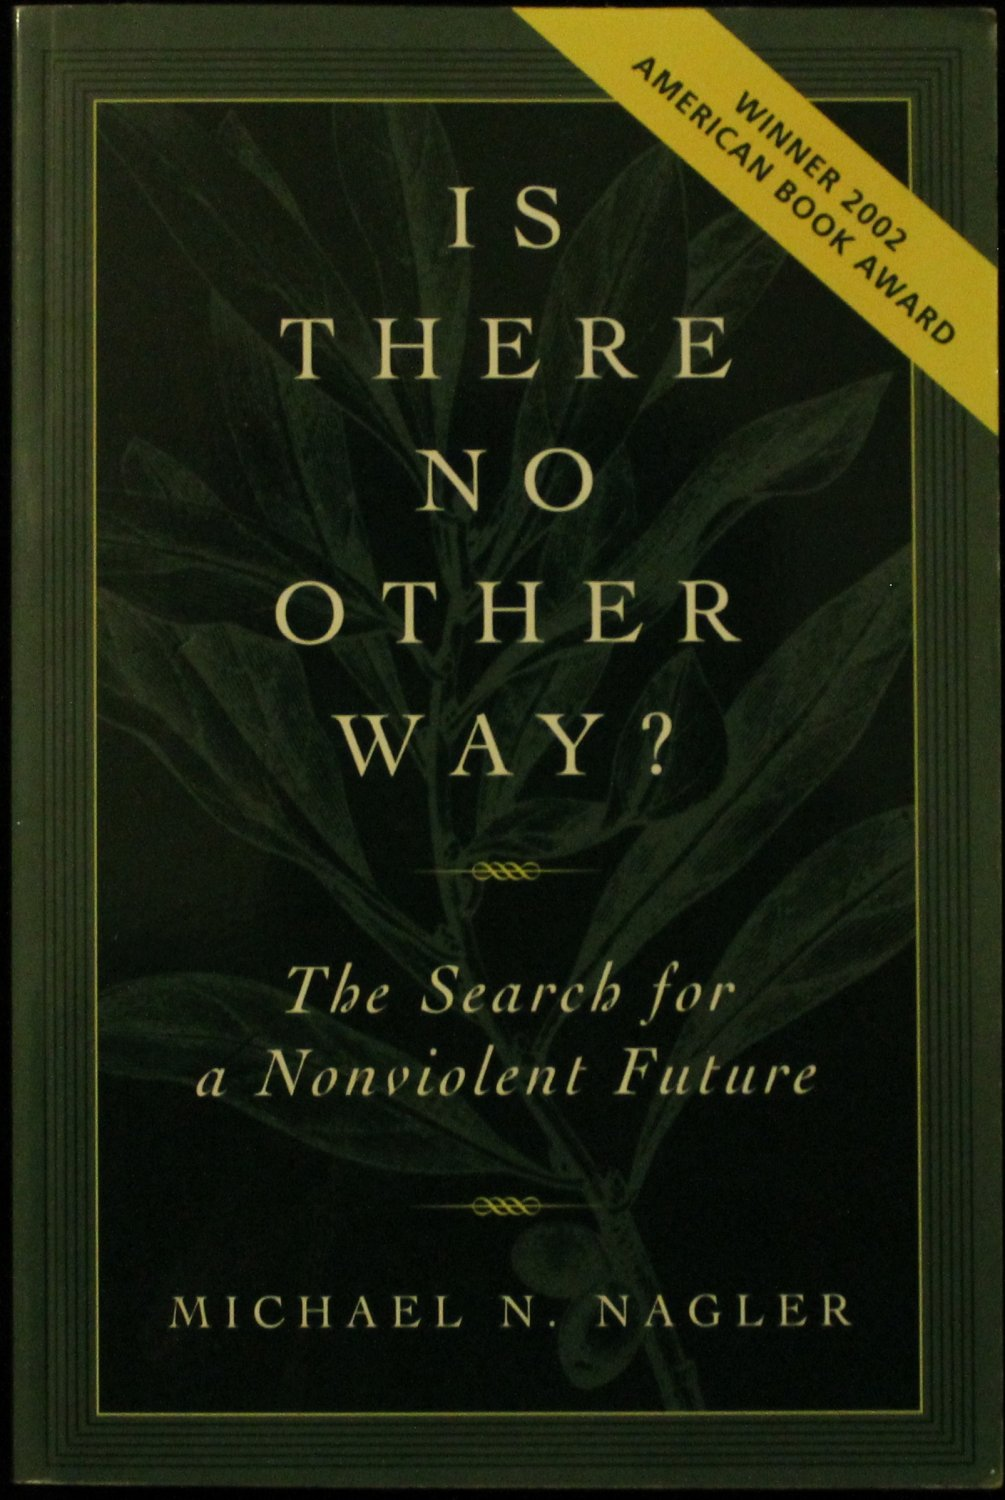 Is there No Other Way? Search for a Non-Violent Future - paperback book by Michael N. Nagler